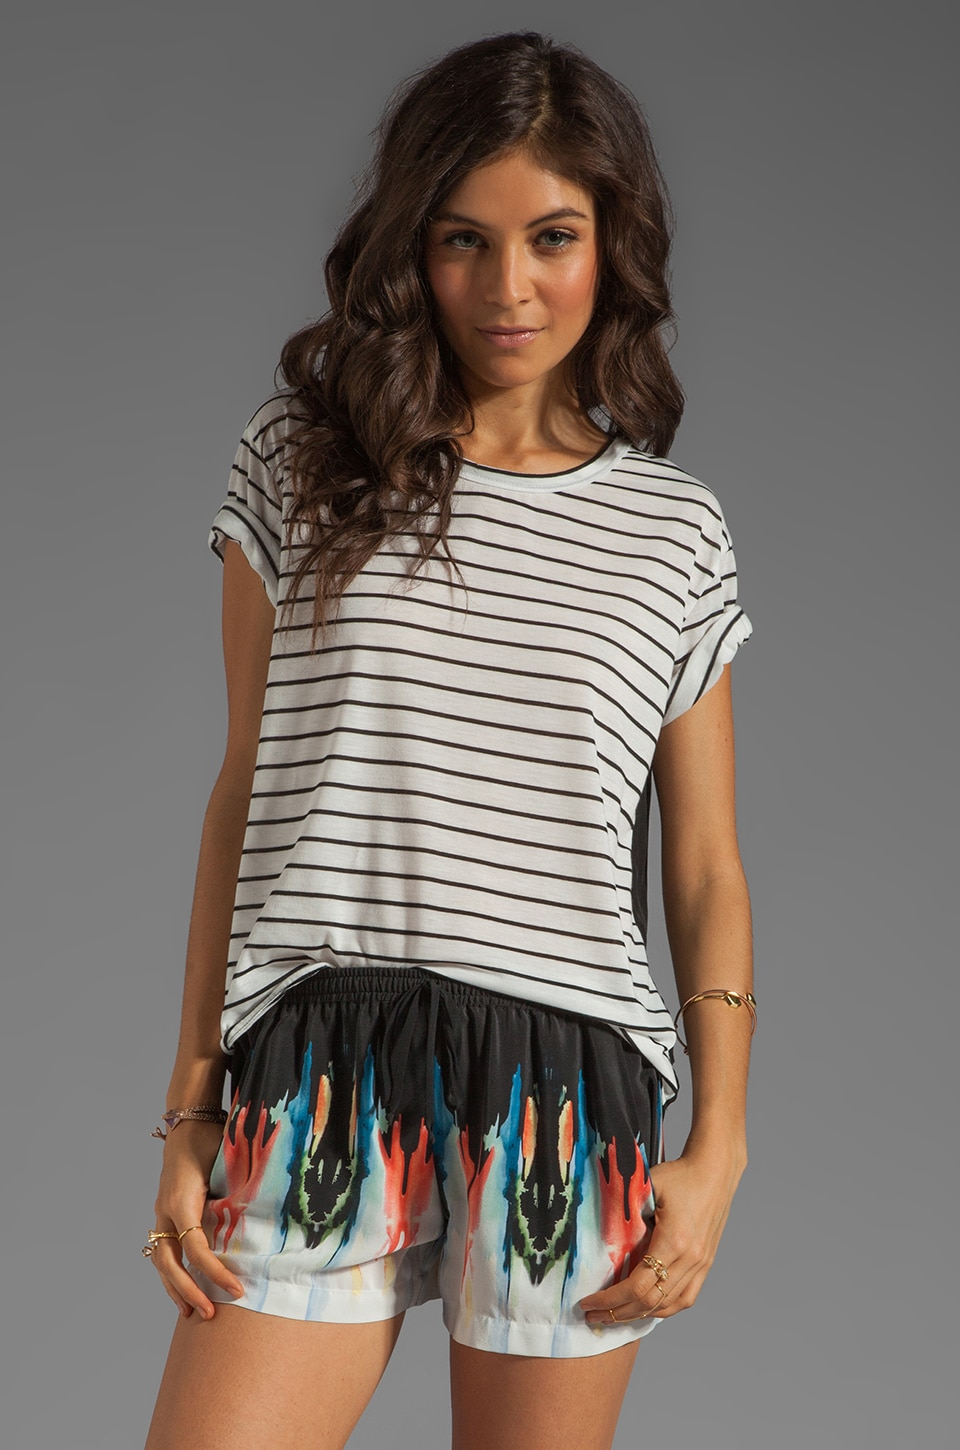 LNA Willow Top in White/Black Stripe